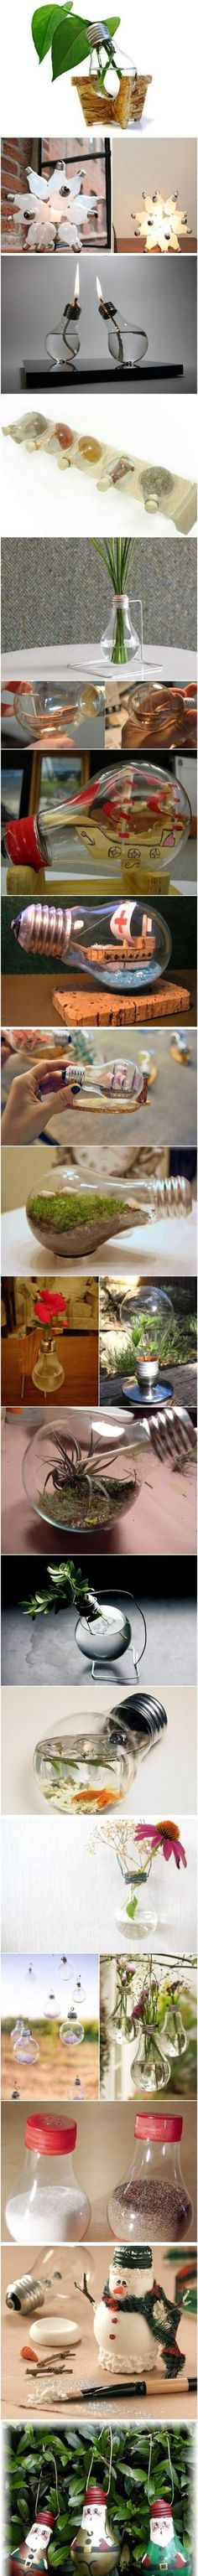 Design Your Own Home With Recycled Light Bulbs - Find Fun Art Projects to Do at Home and Arts and Crafts Ideas Recycled Light Bulbs, Light Bulb Crafts, Fun Crafts, Diy And Crafts, Arts And Crafts, Recycled Crafts, Diy Projects To Try, Craft Projects, Craft Ideas